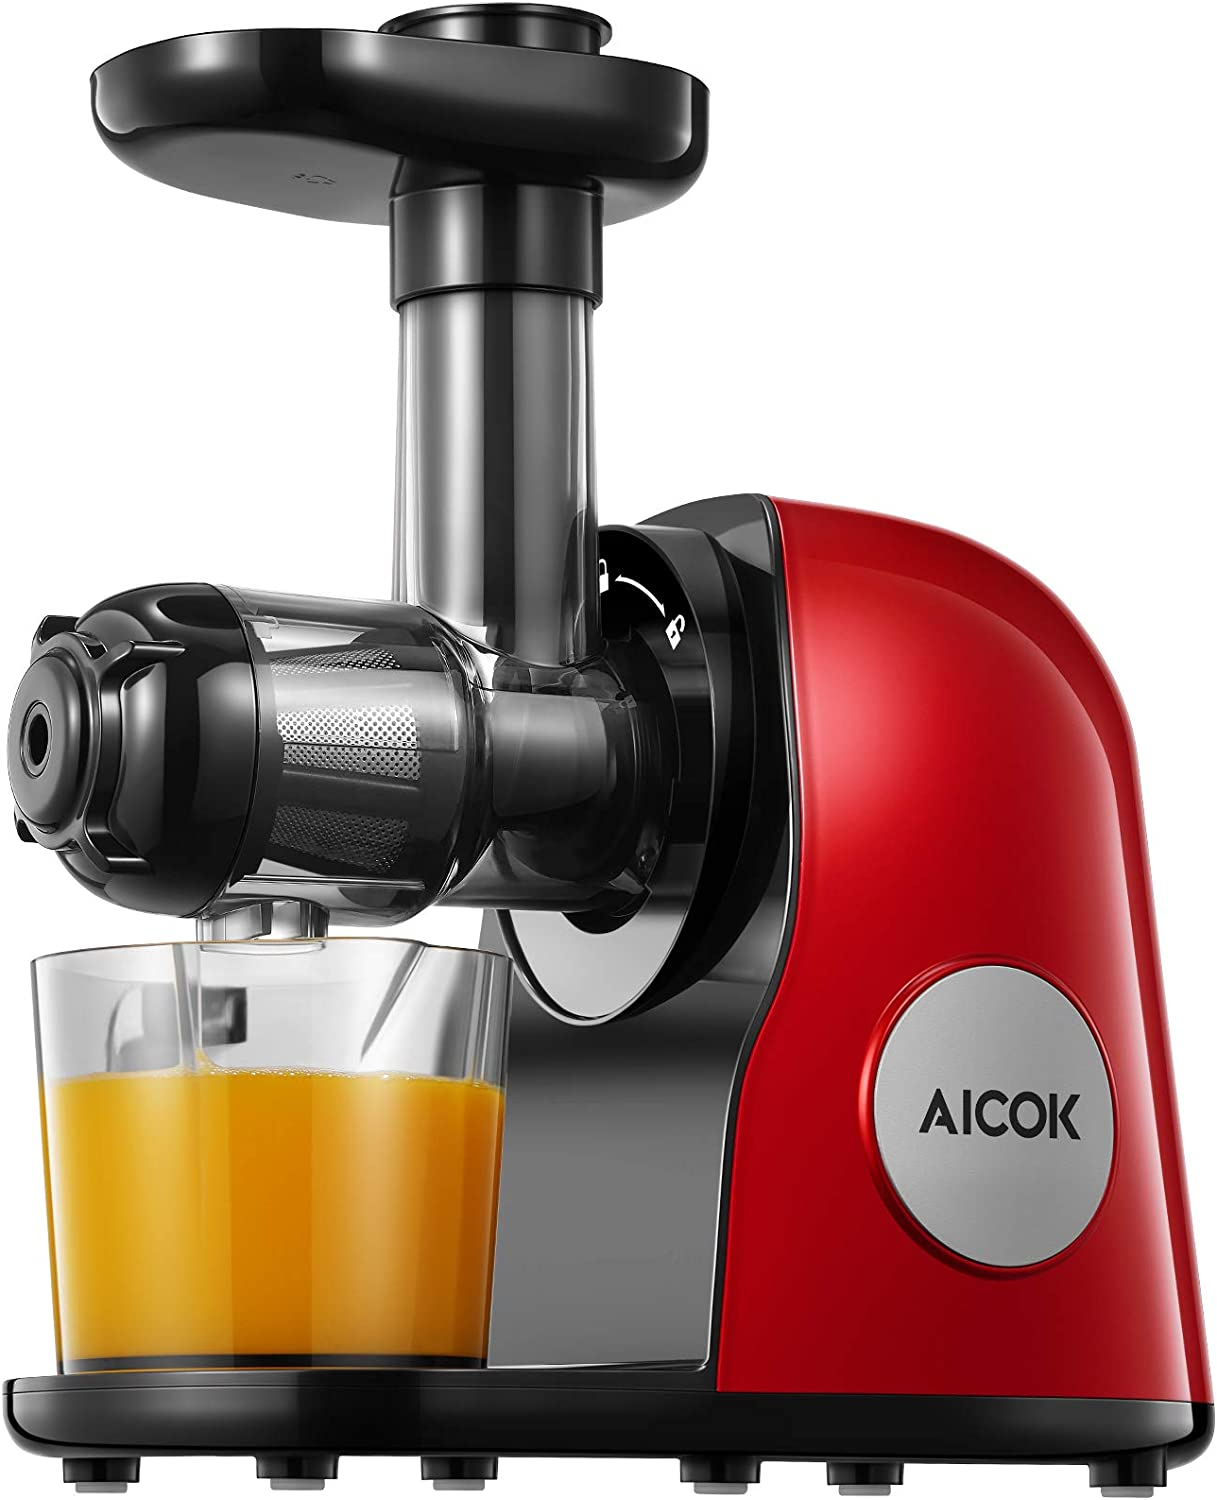 Juicer Machines, Aicok Slow Masticating Juicer Extractor Easy to Clean, Quiet Motor & Reverse Function, BPA-Free, Cold Press Juicer with Brush, Juice Recipes for Vegetables and Fruits, Hot Red